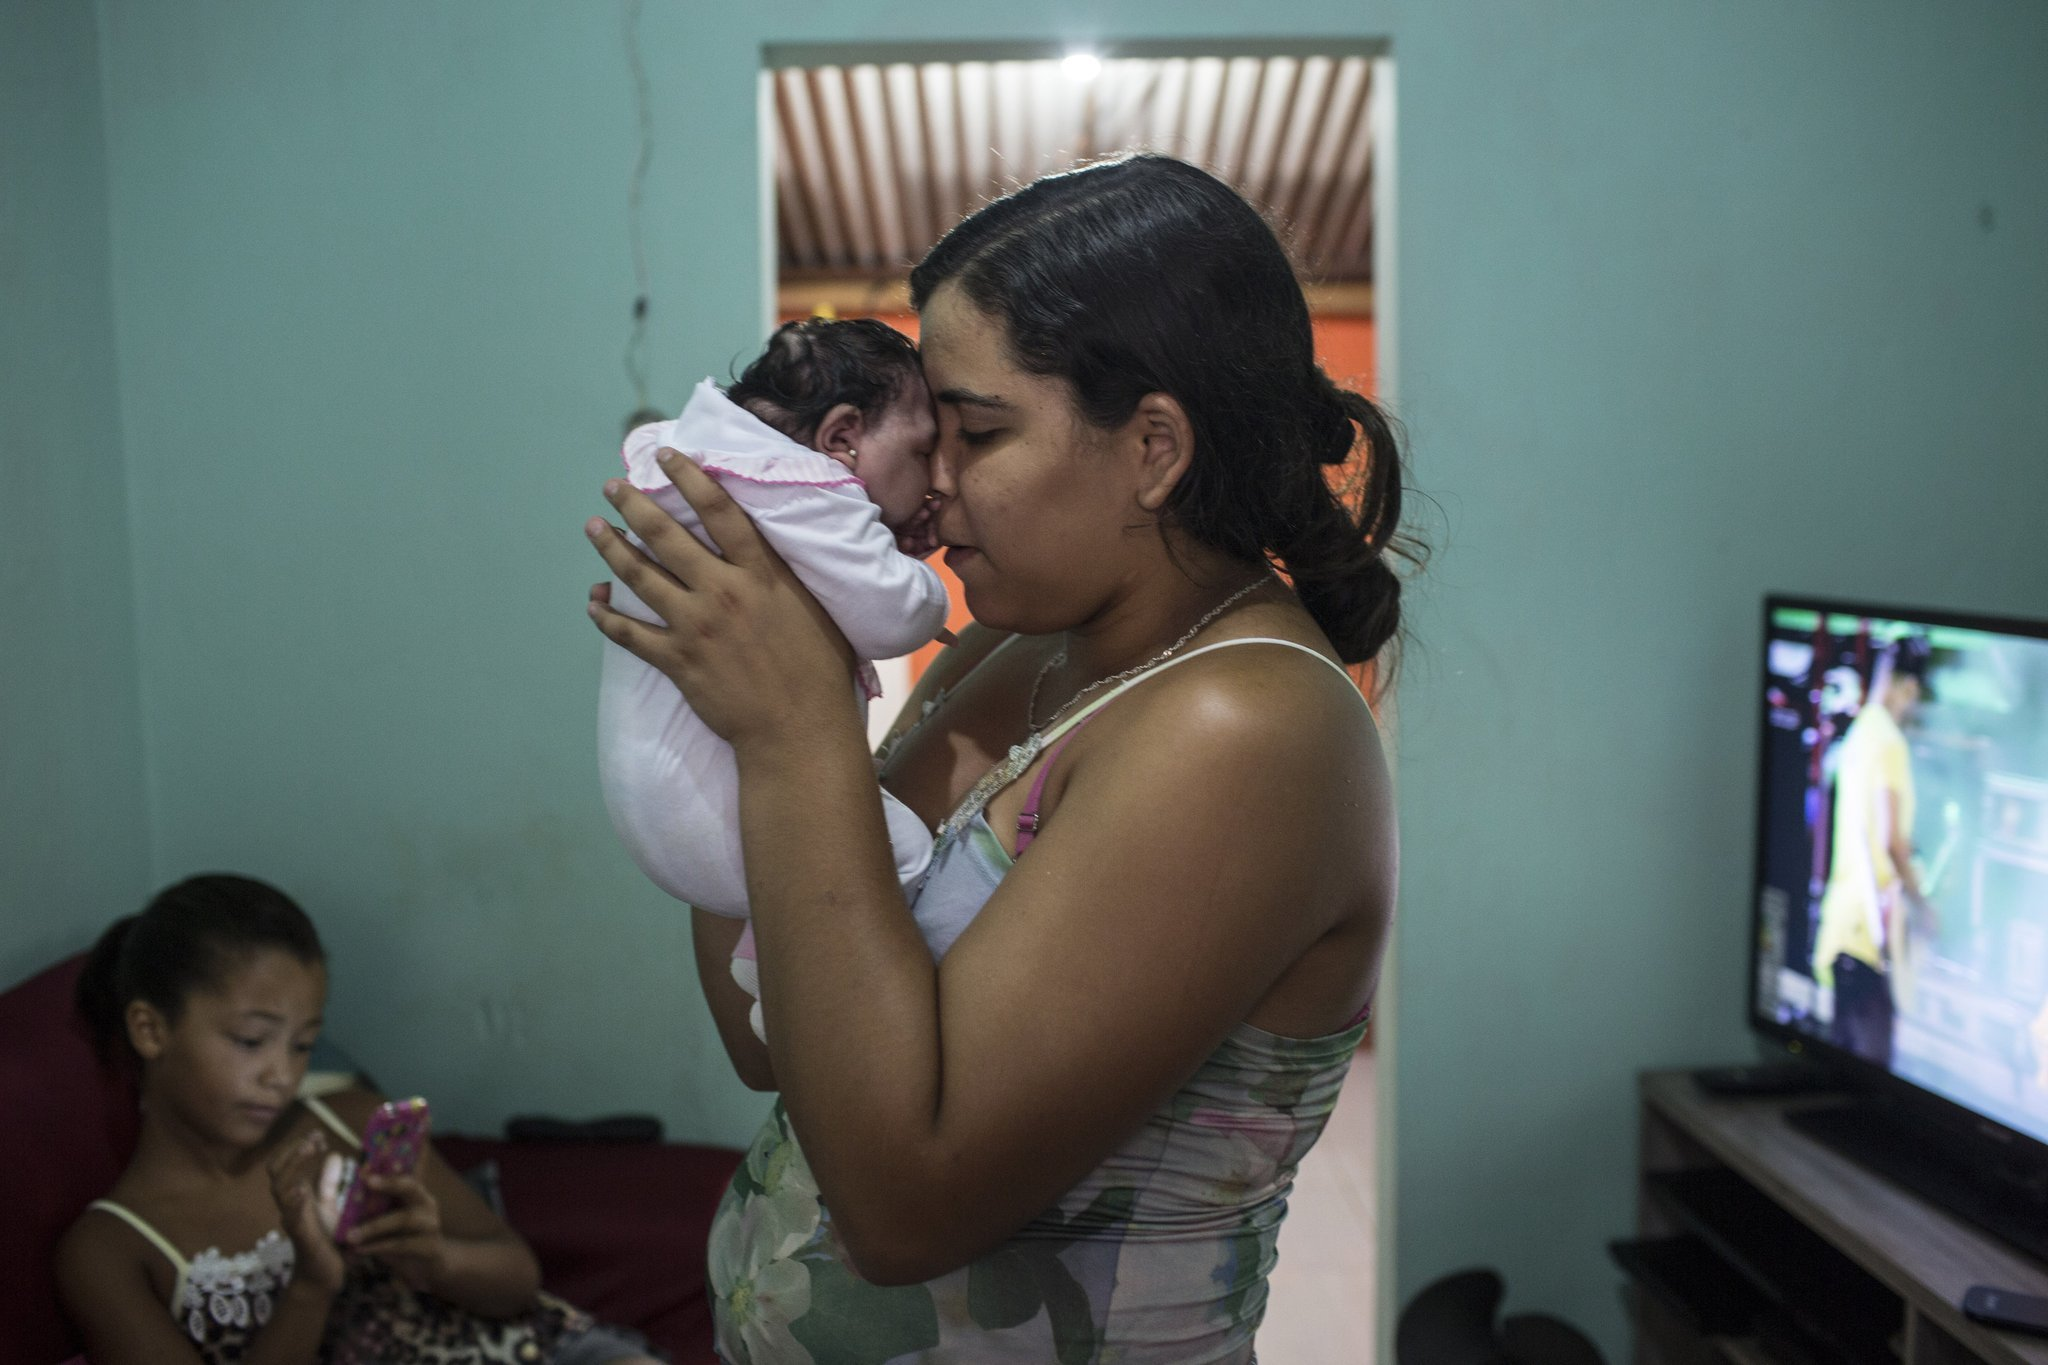 Zika outbreak prompts recommendation to halt pregnancies in Latin America